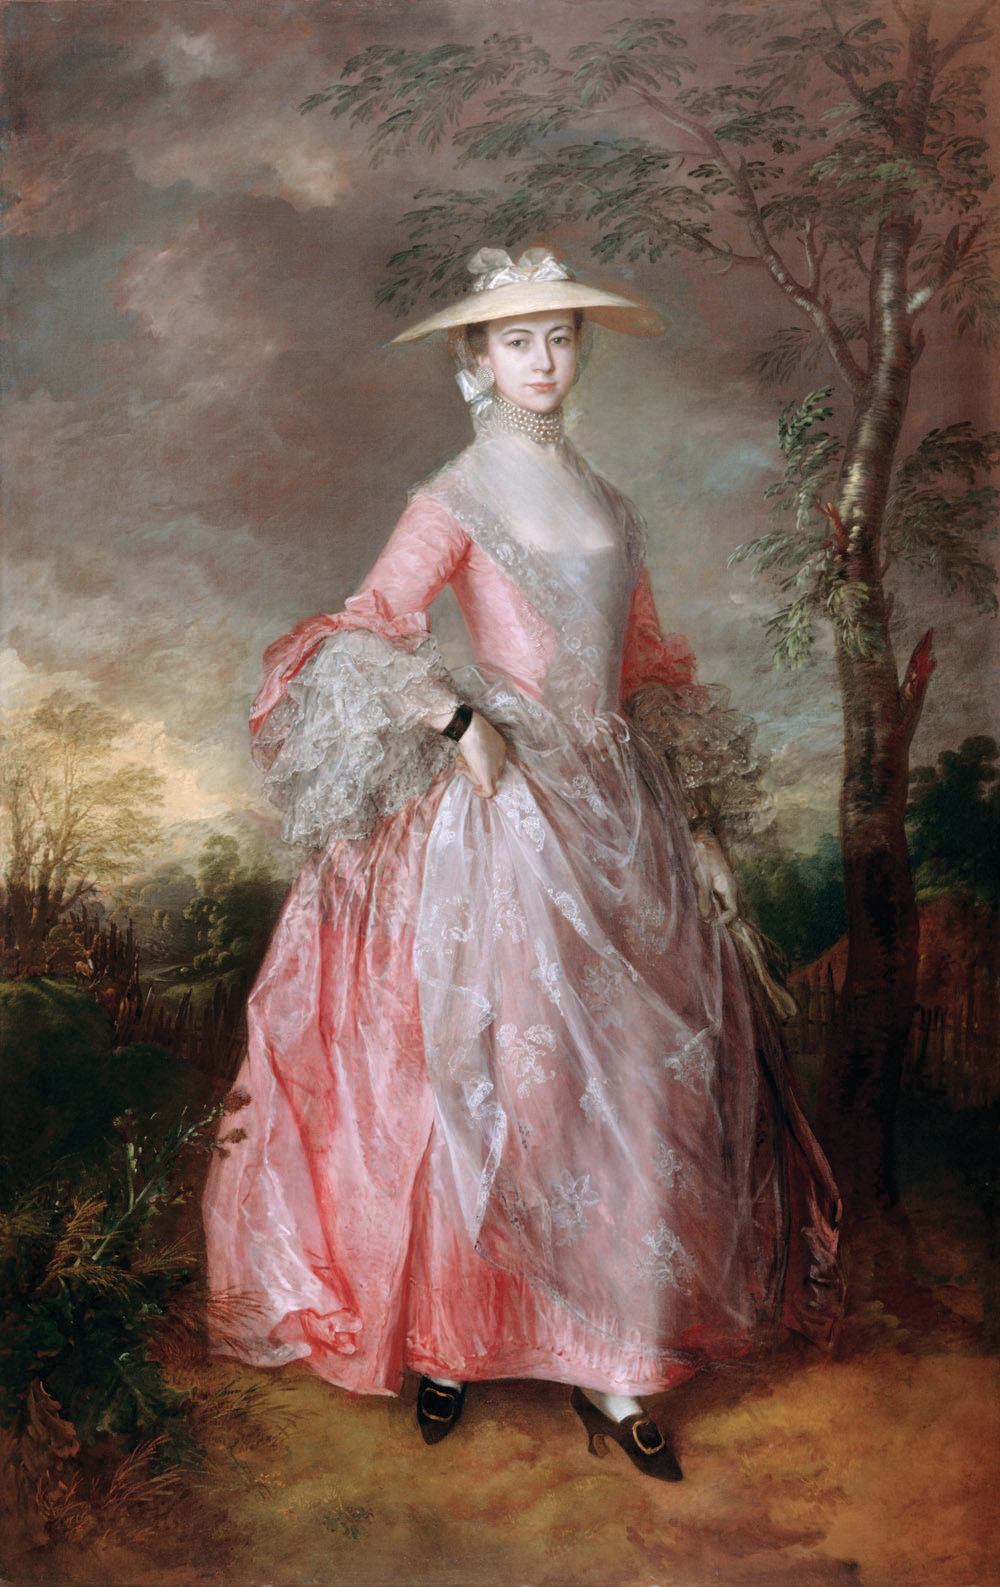 https://i2.wp.com/upload.wikimedia.org/wikipedia/commons/4/43/Thomas_Gainsborough_-_Mary%2C_Countess_of_Howe_-_WGA08407.jpg